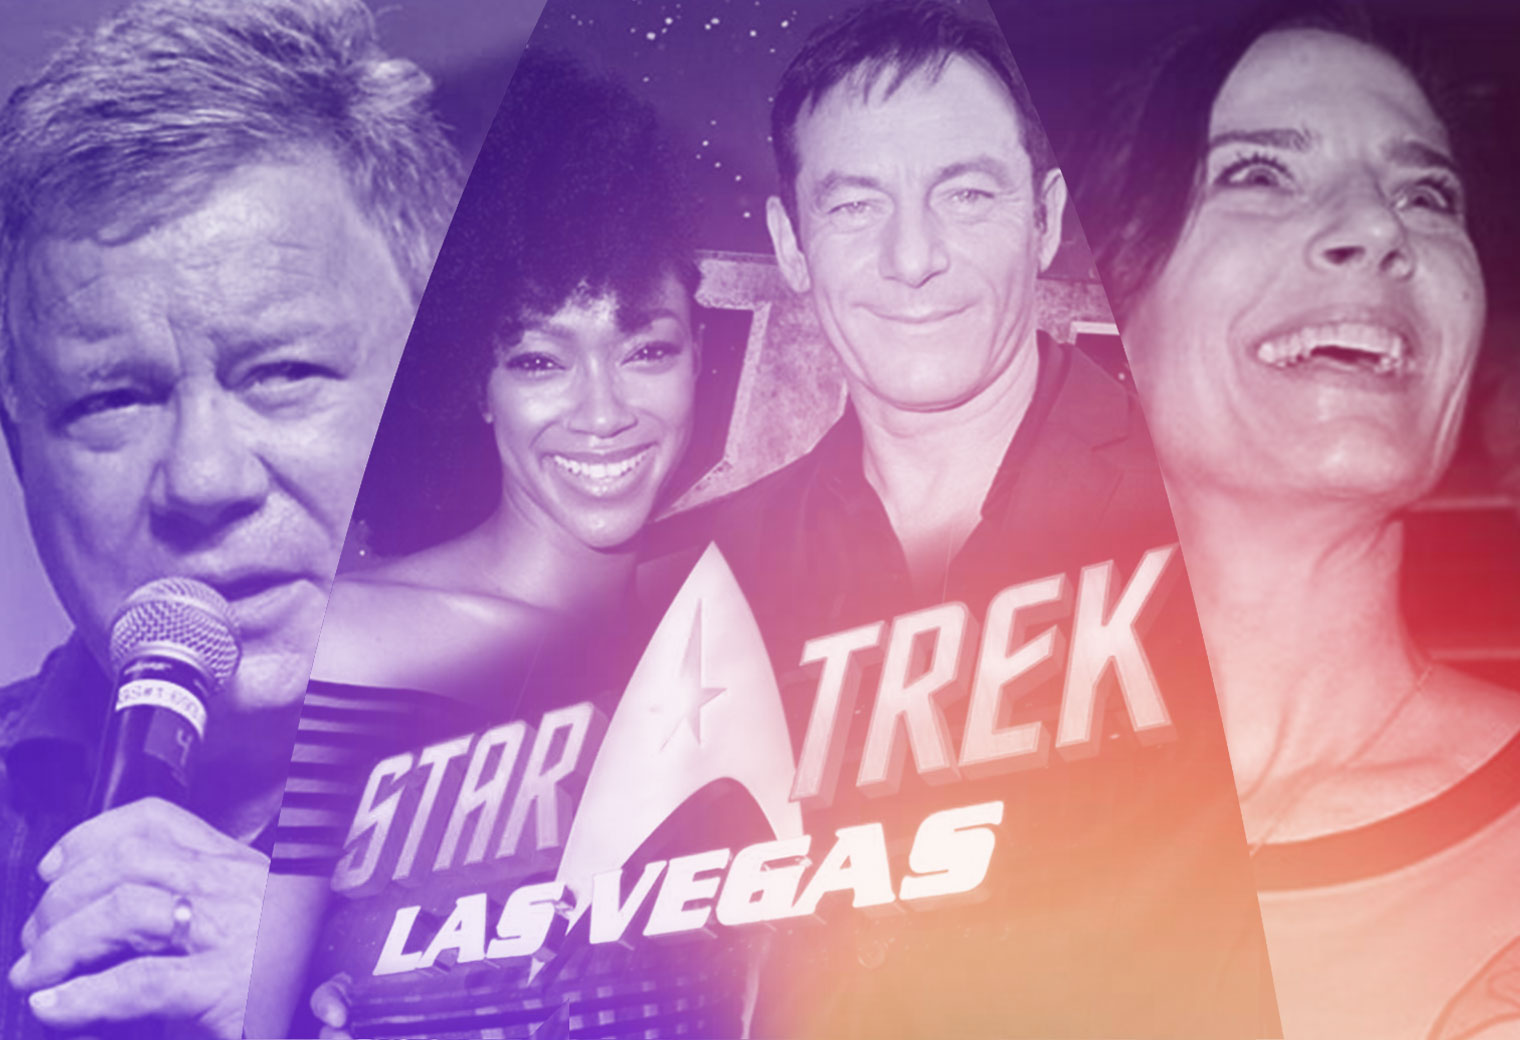 [PREVIEW] DISCOVERY and DS9 Take Center Stage at Star Trek Las Vegas 2018